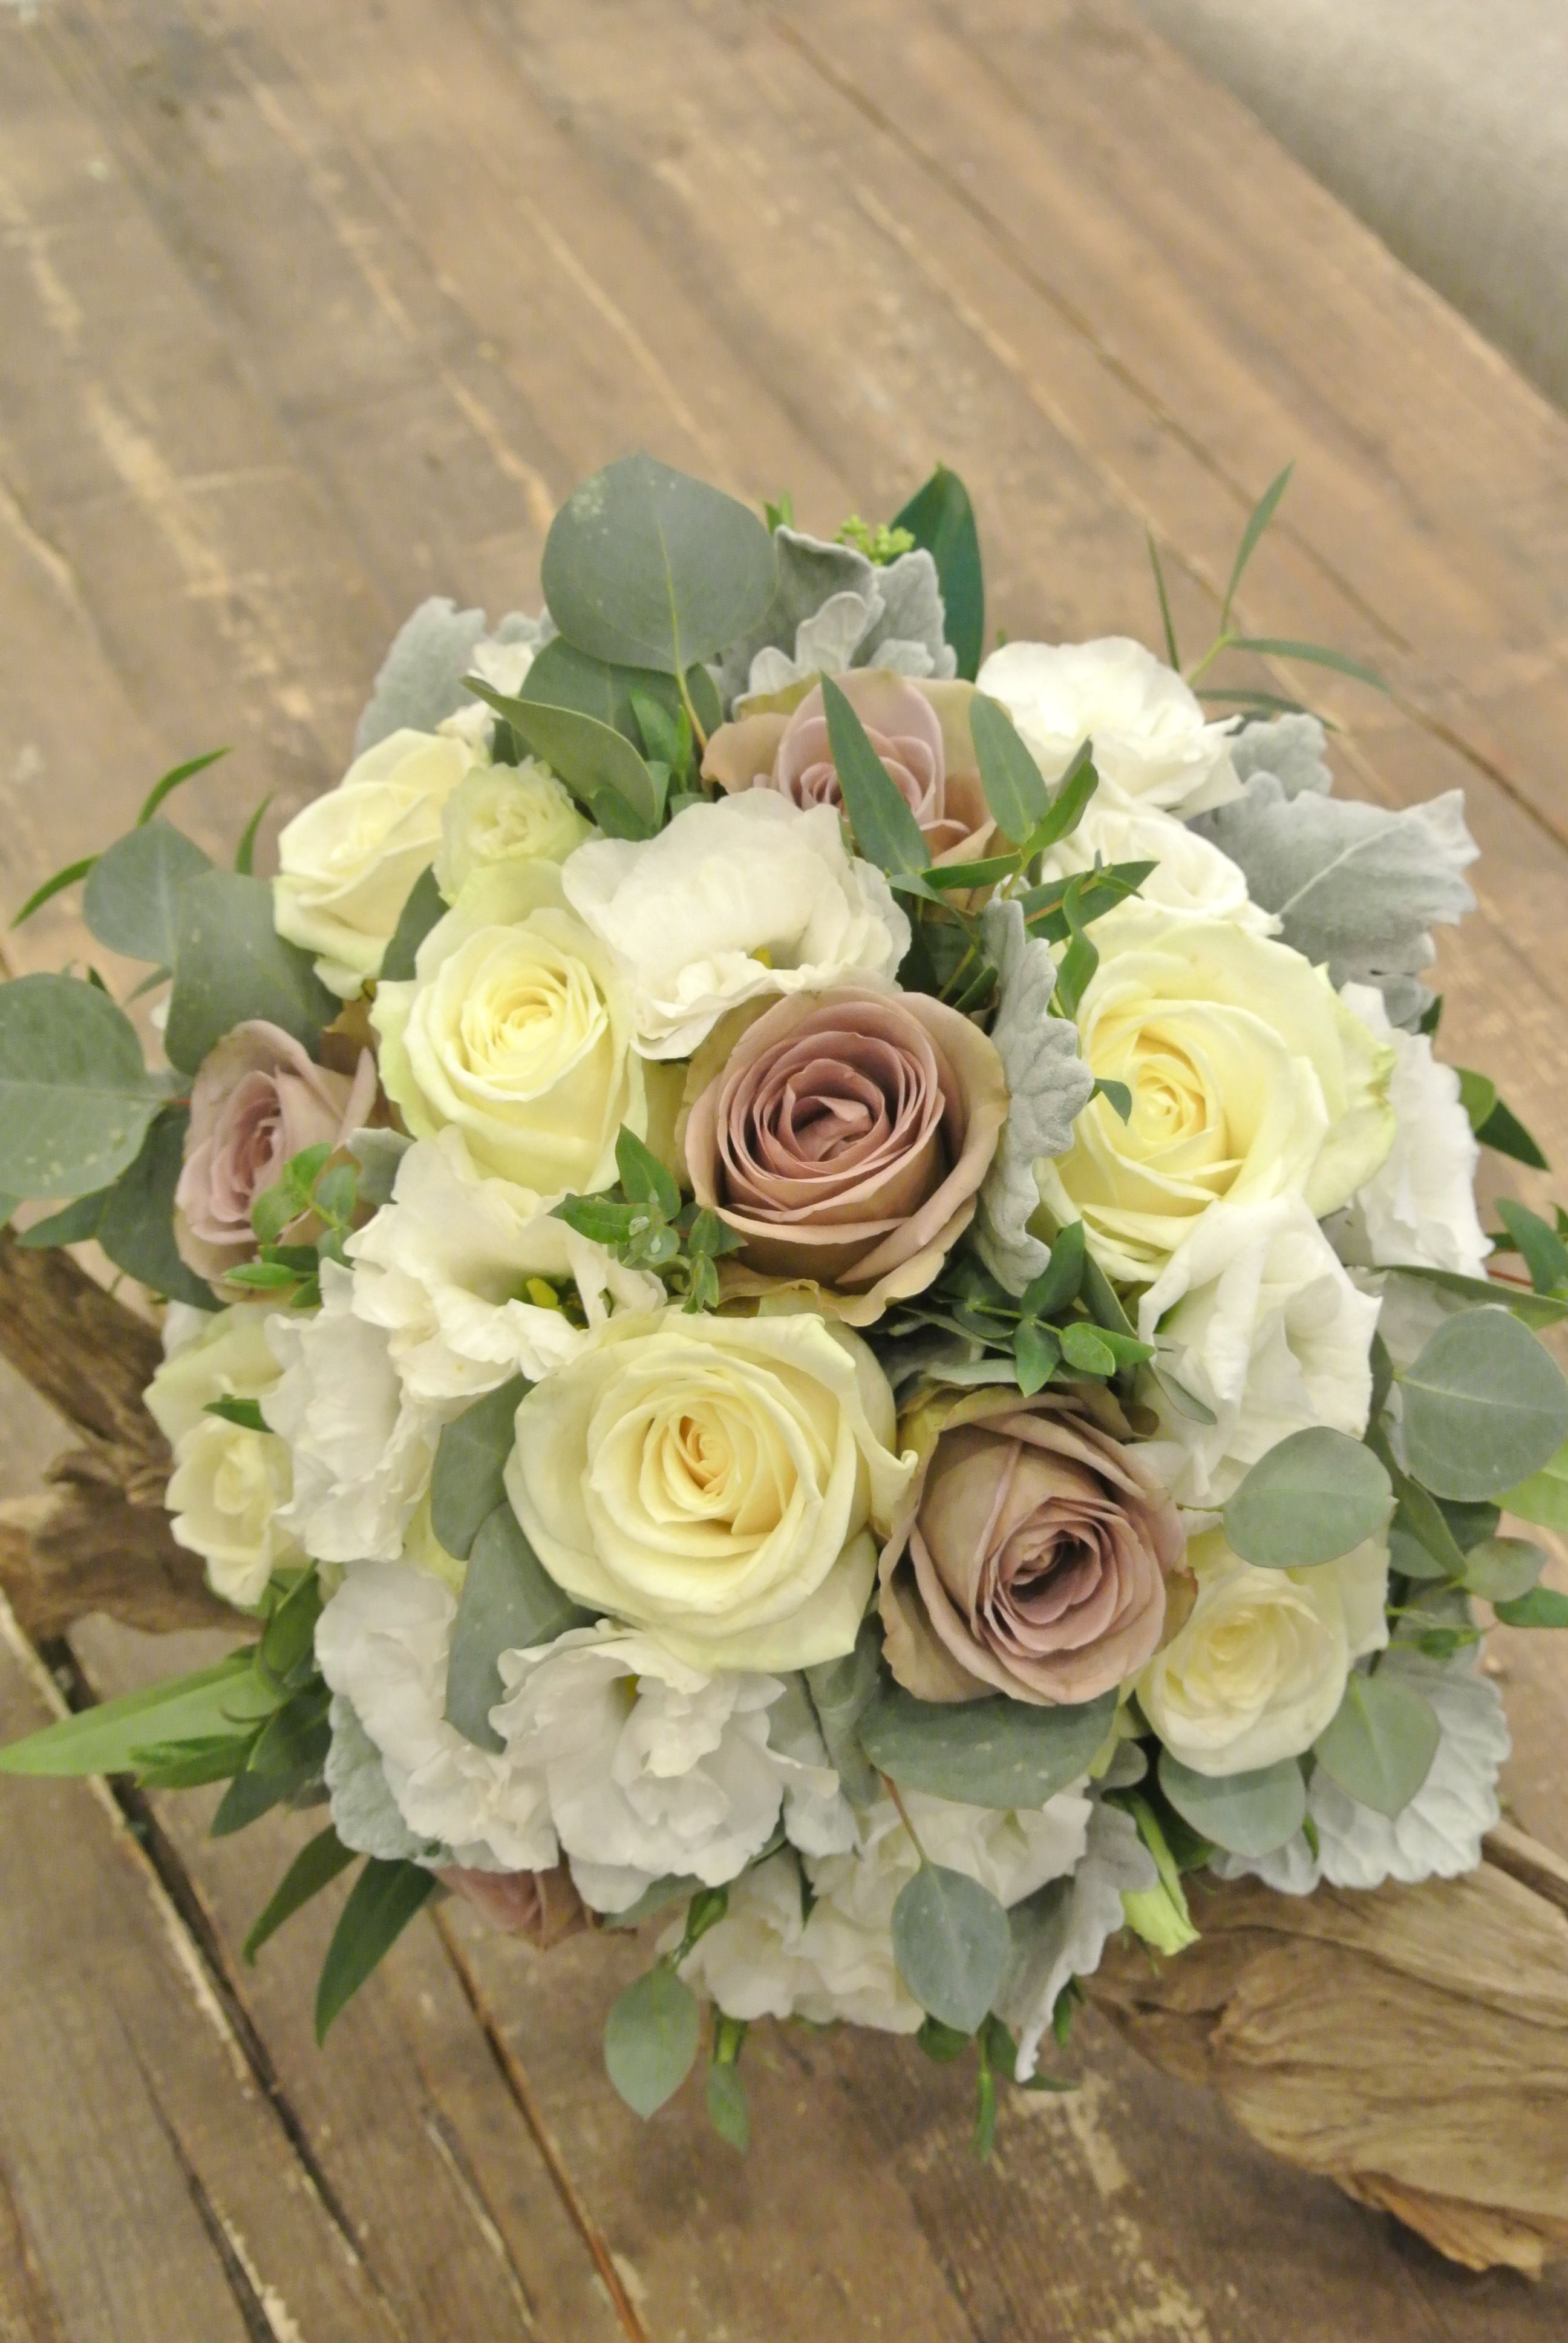 Bridal Bouquet With Roses Lisianthus And Eucalyptus Designed By